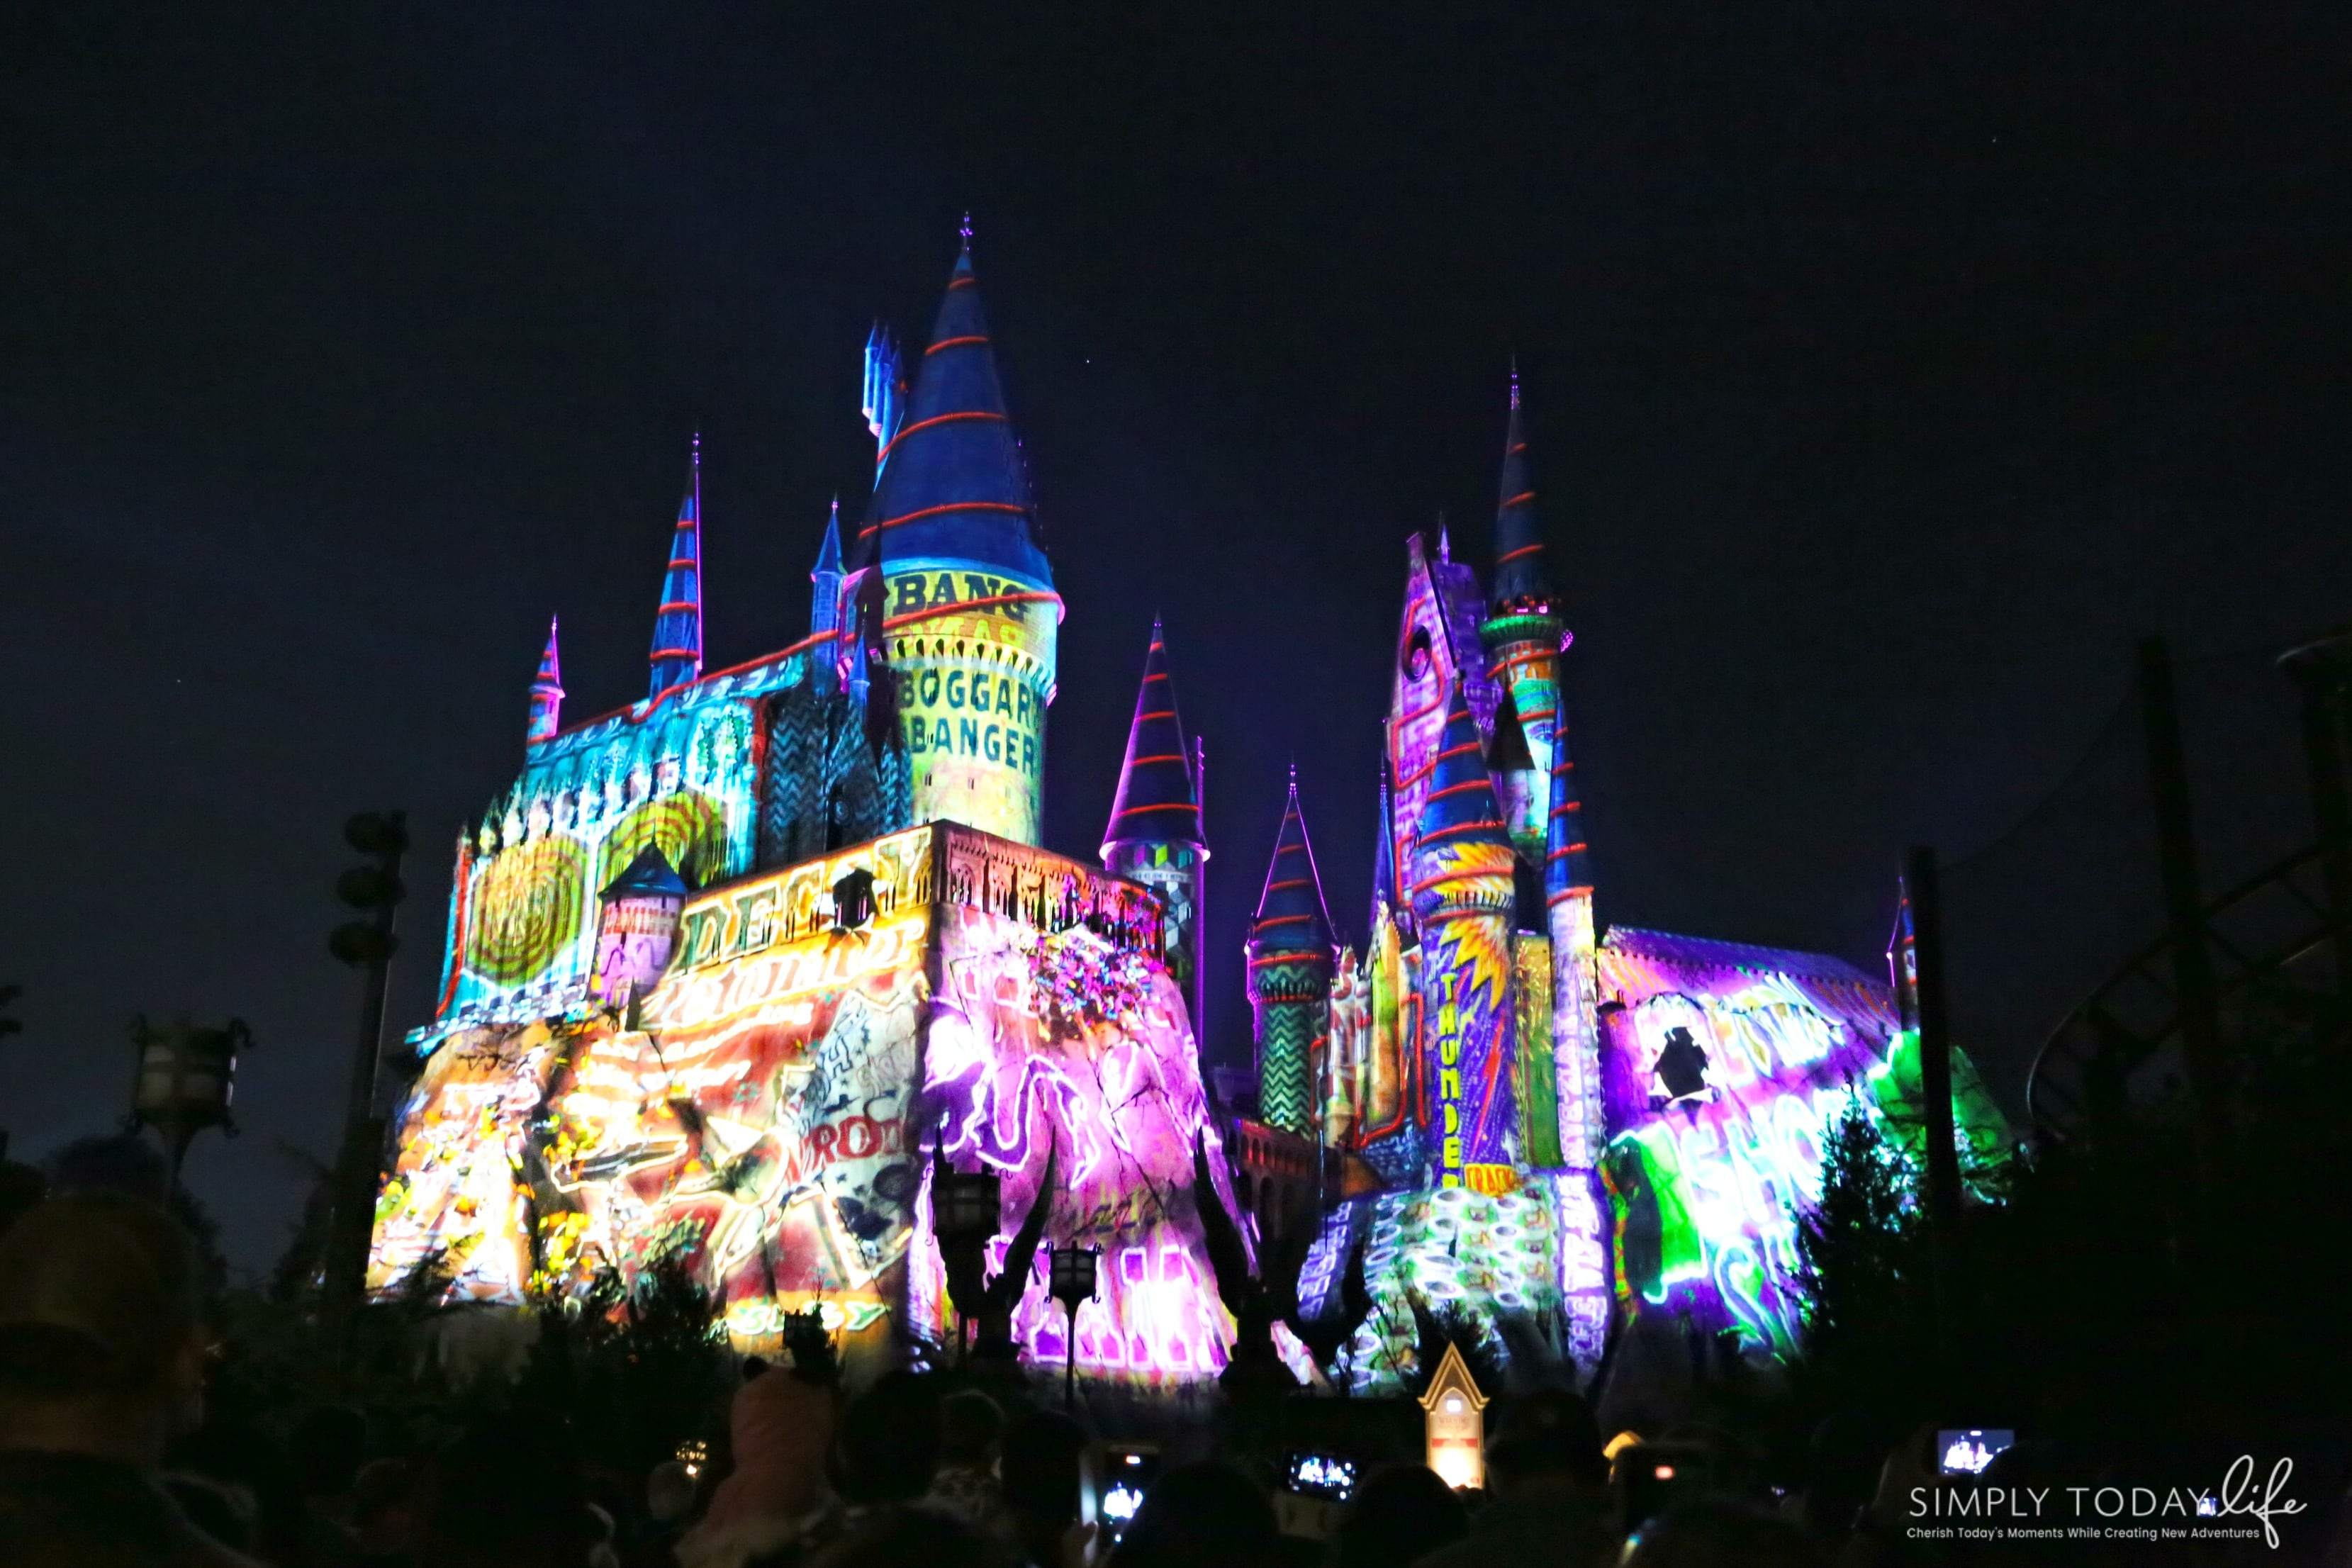 Family Guide To Celebrating the Holidays at Universal Orlando Resort - The Magic of Christmas at Hogwarts Castle